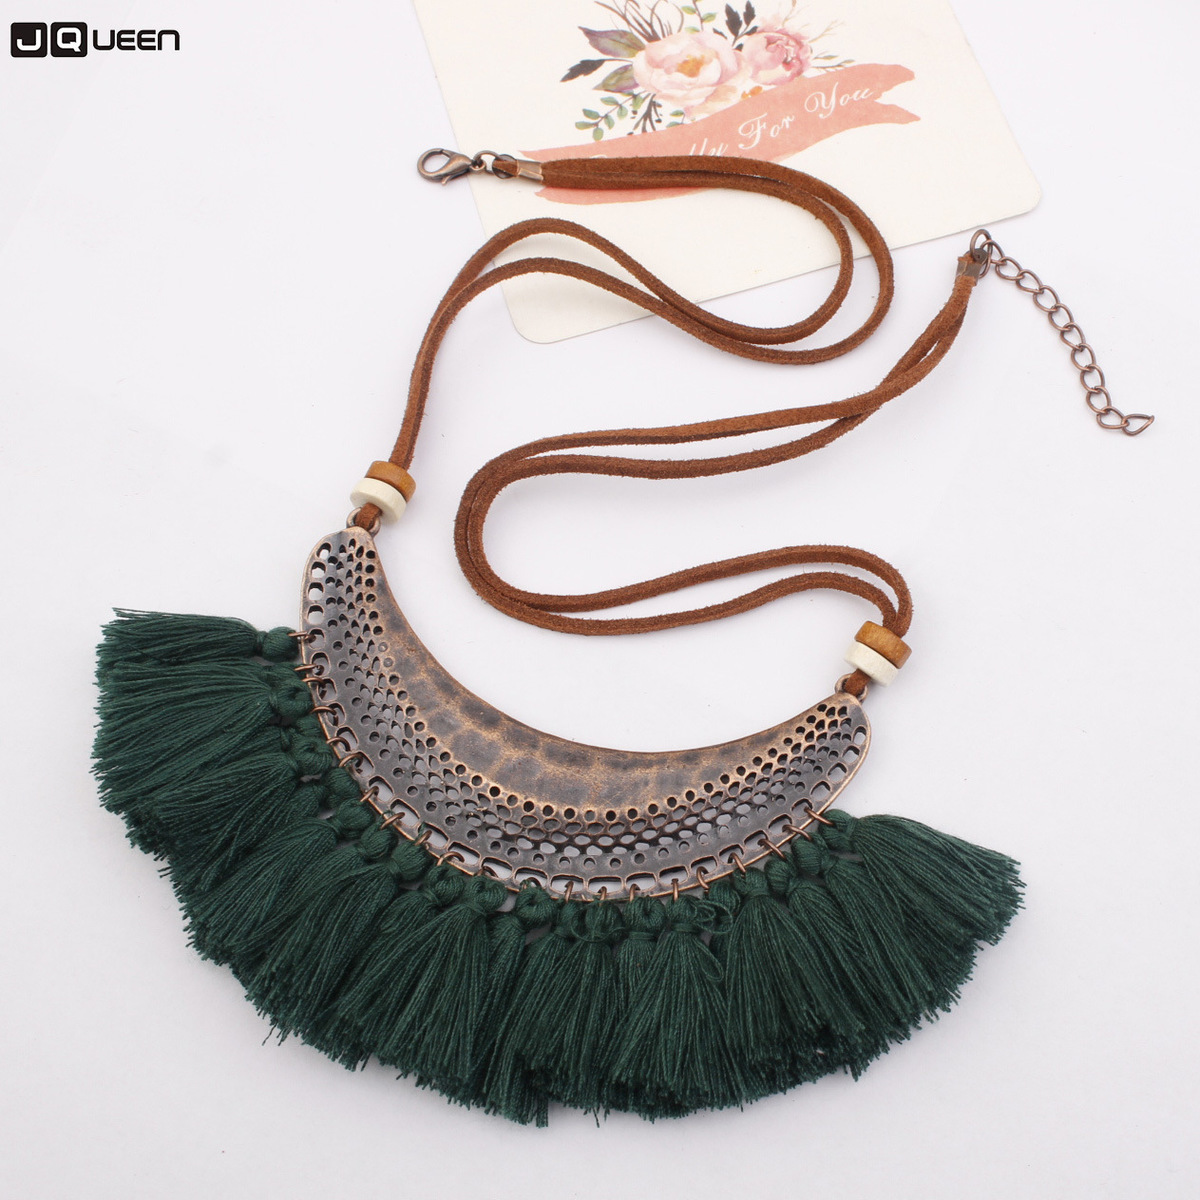 Chain Necklace Tassels-Sweater Moon Pendant Woman Accessories Alloy-Crescent Colorful